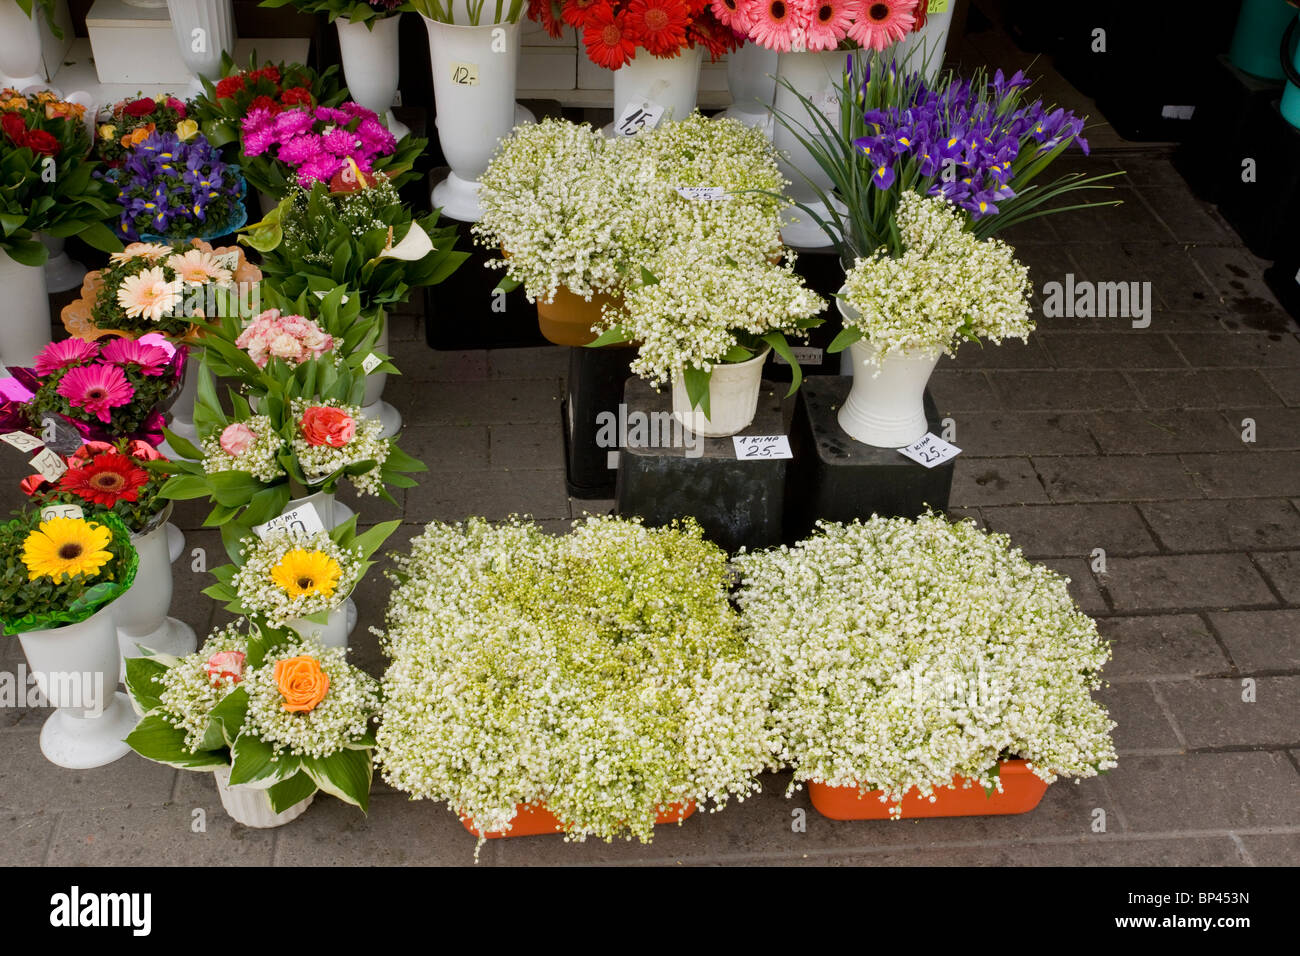 Lily place stock photos lily place stock images alamy flowers for sale in tallinn market including wild collected lily of the izmirmasajfo